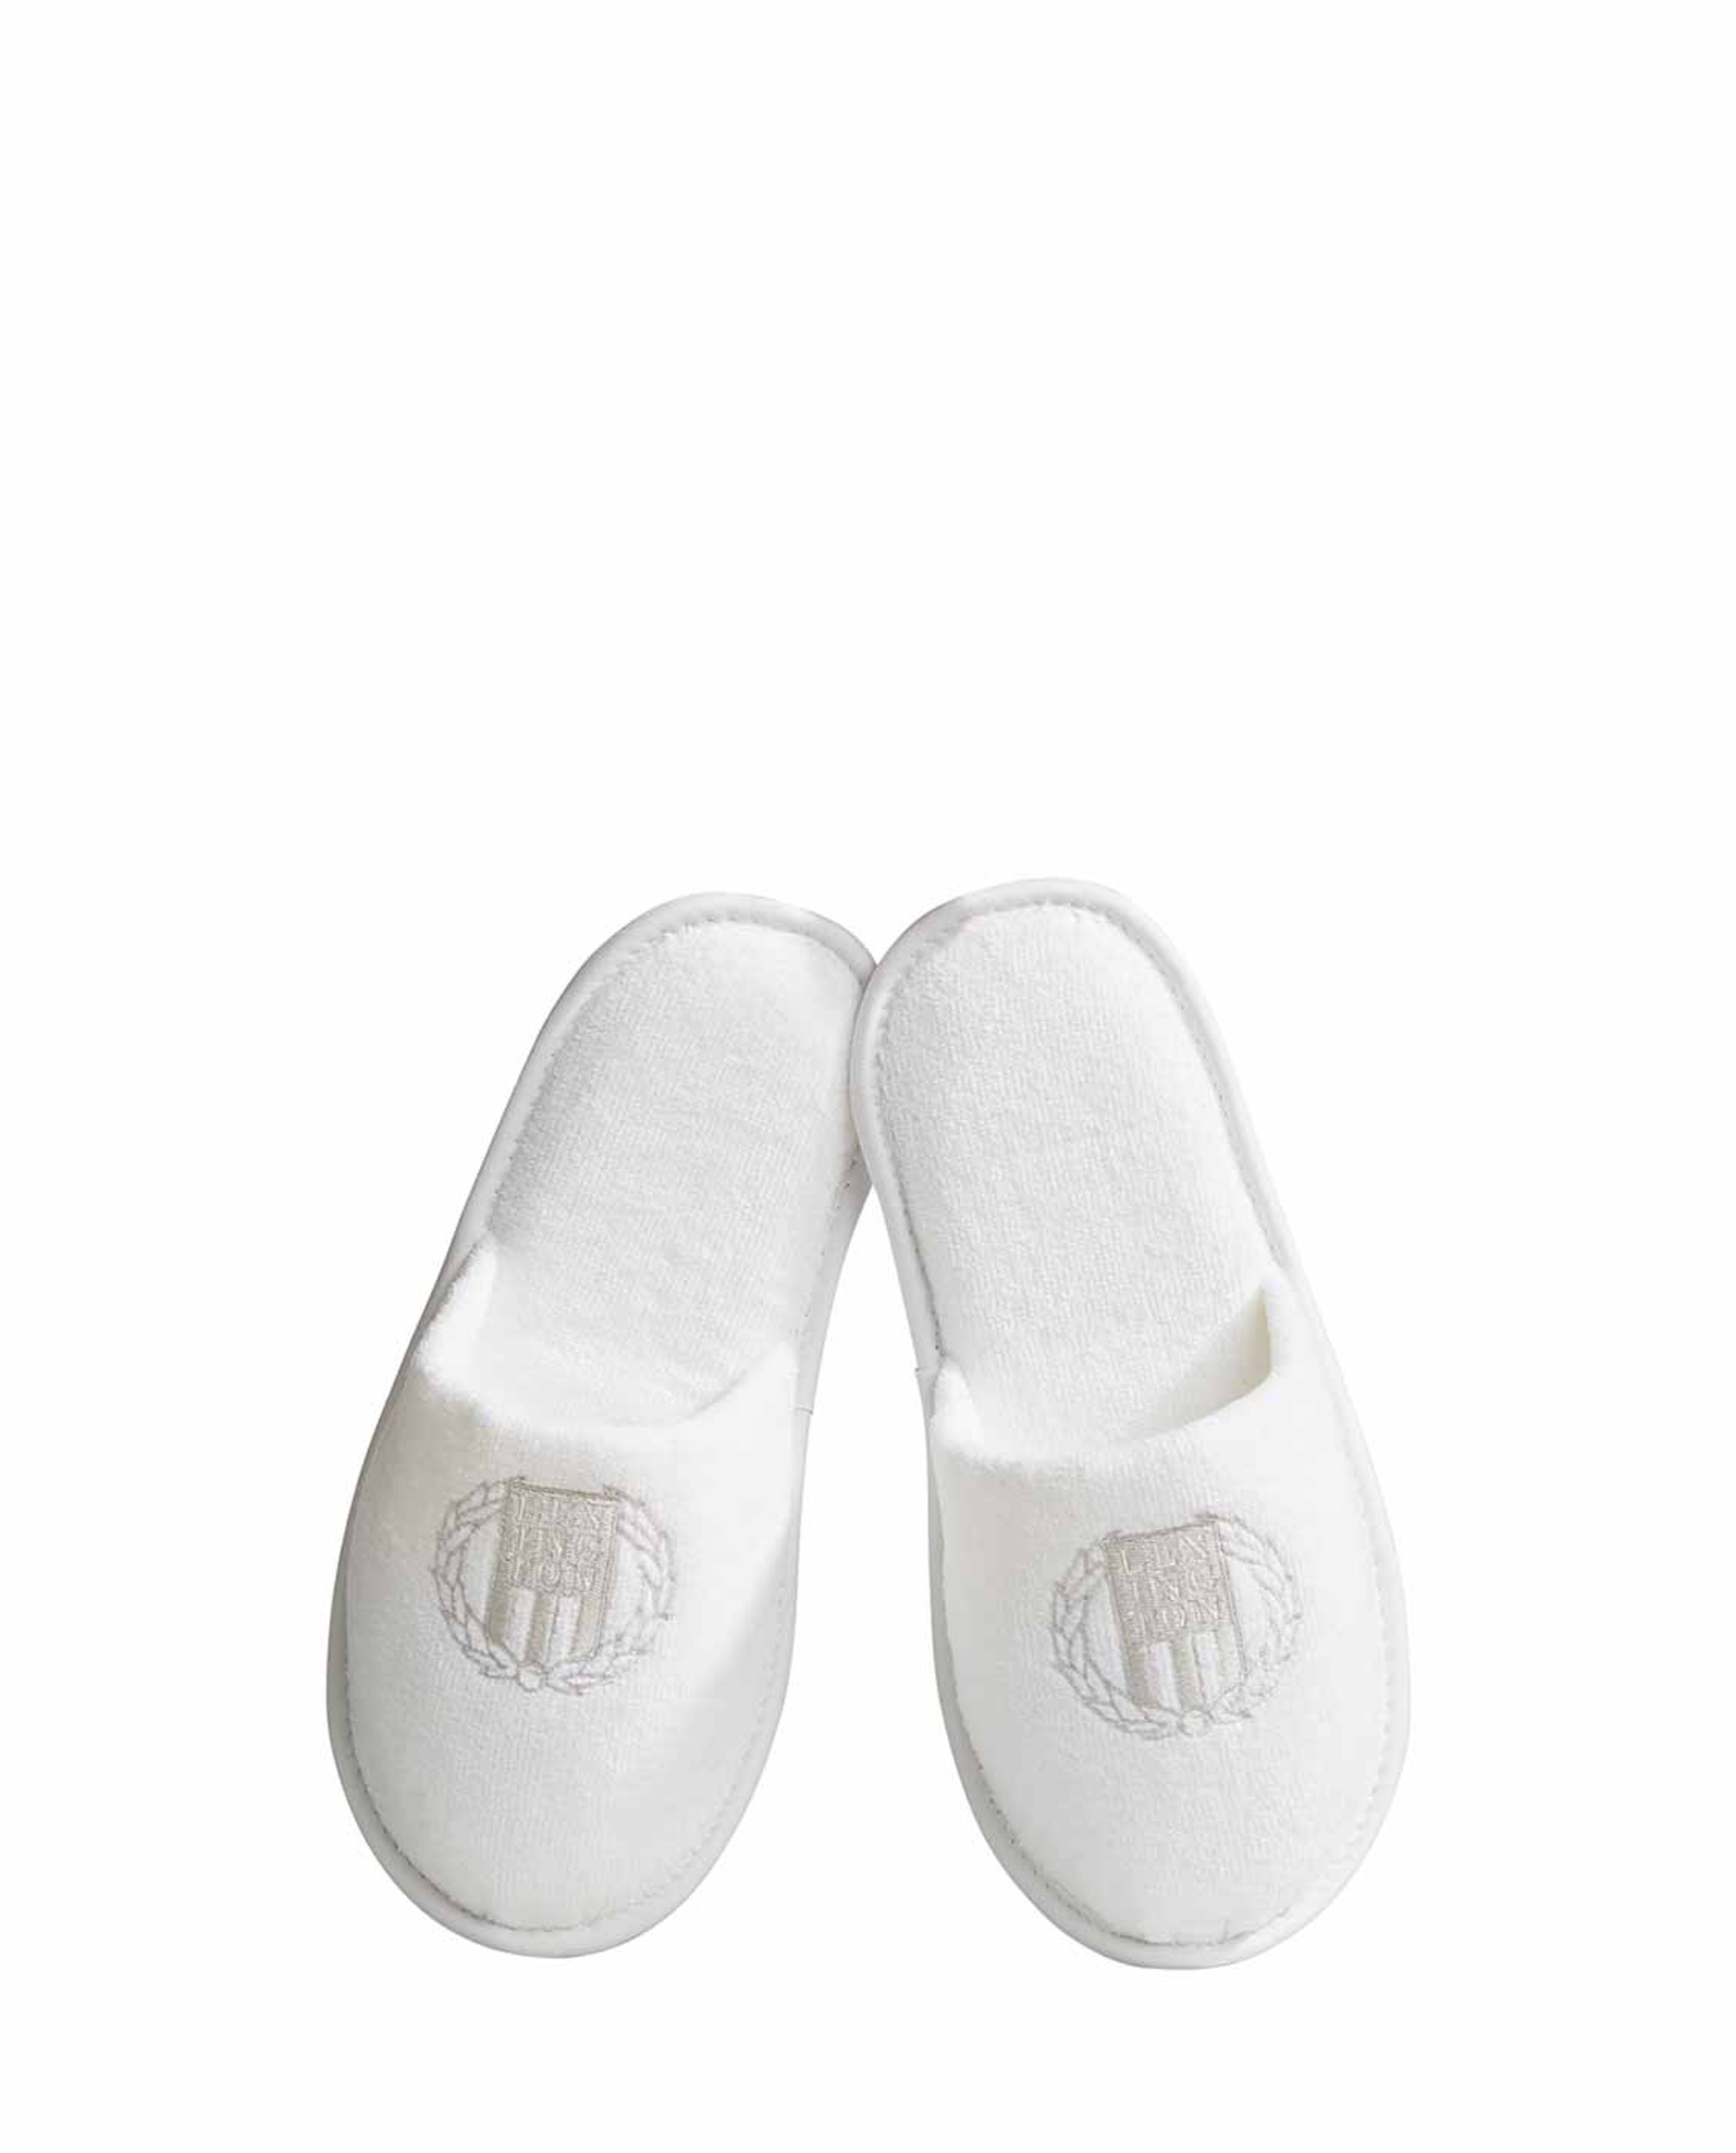 Lexington Hotel Velour Slippers, White